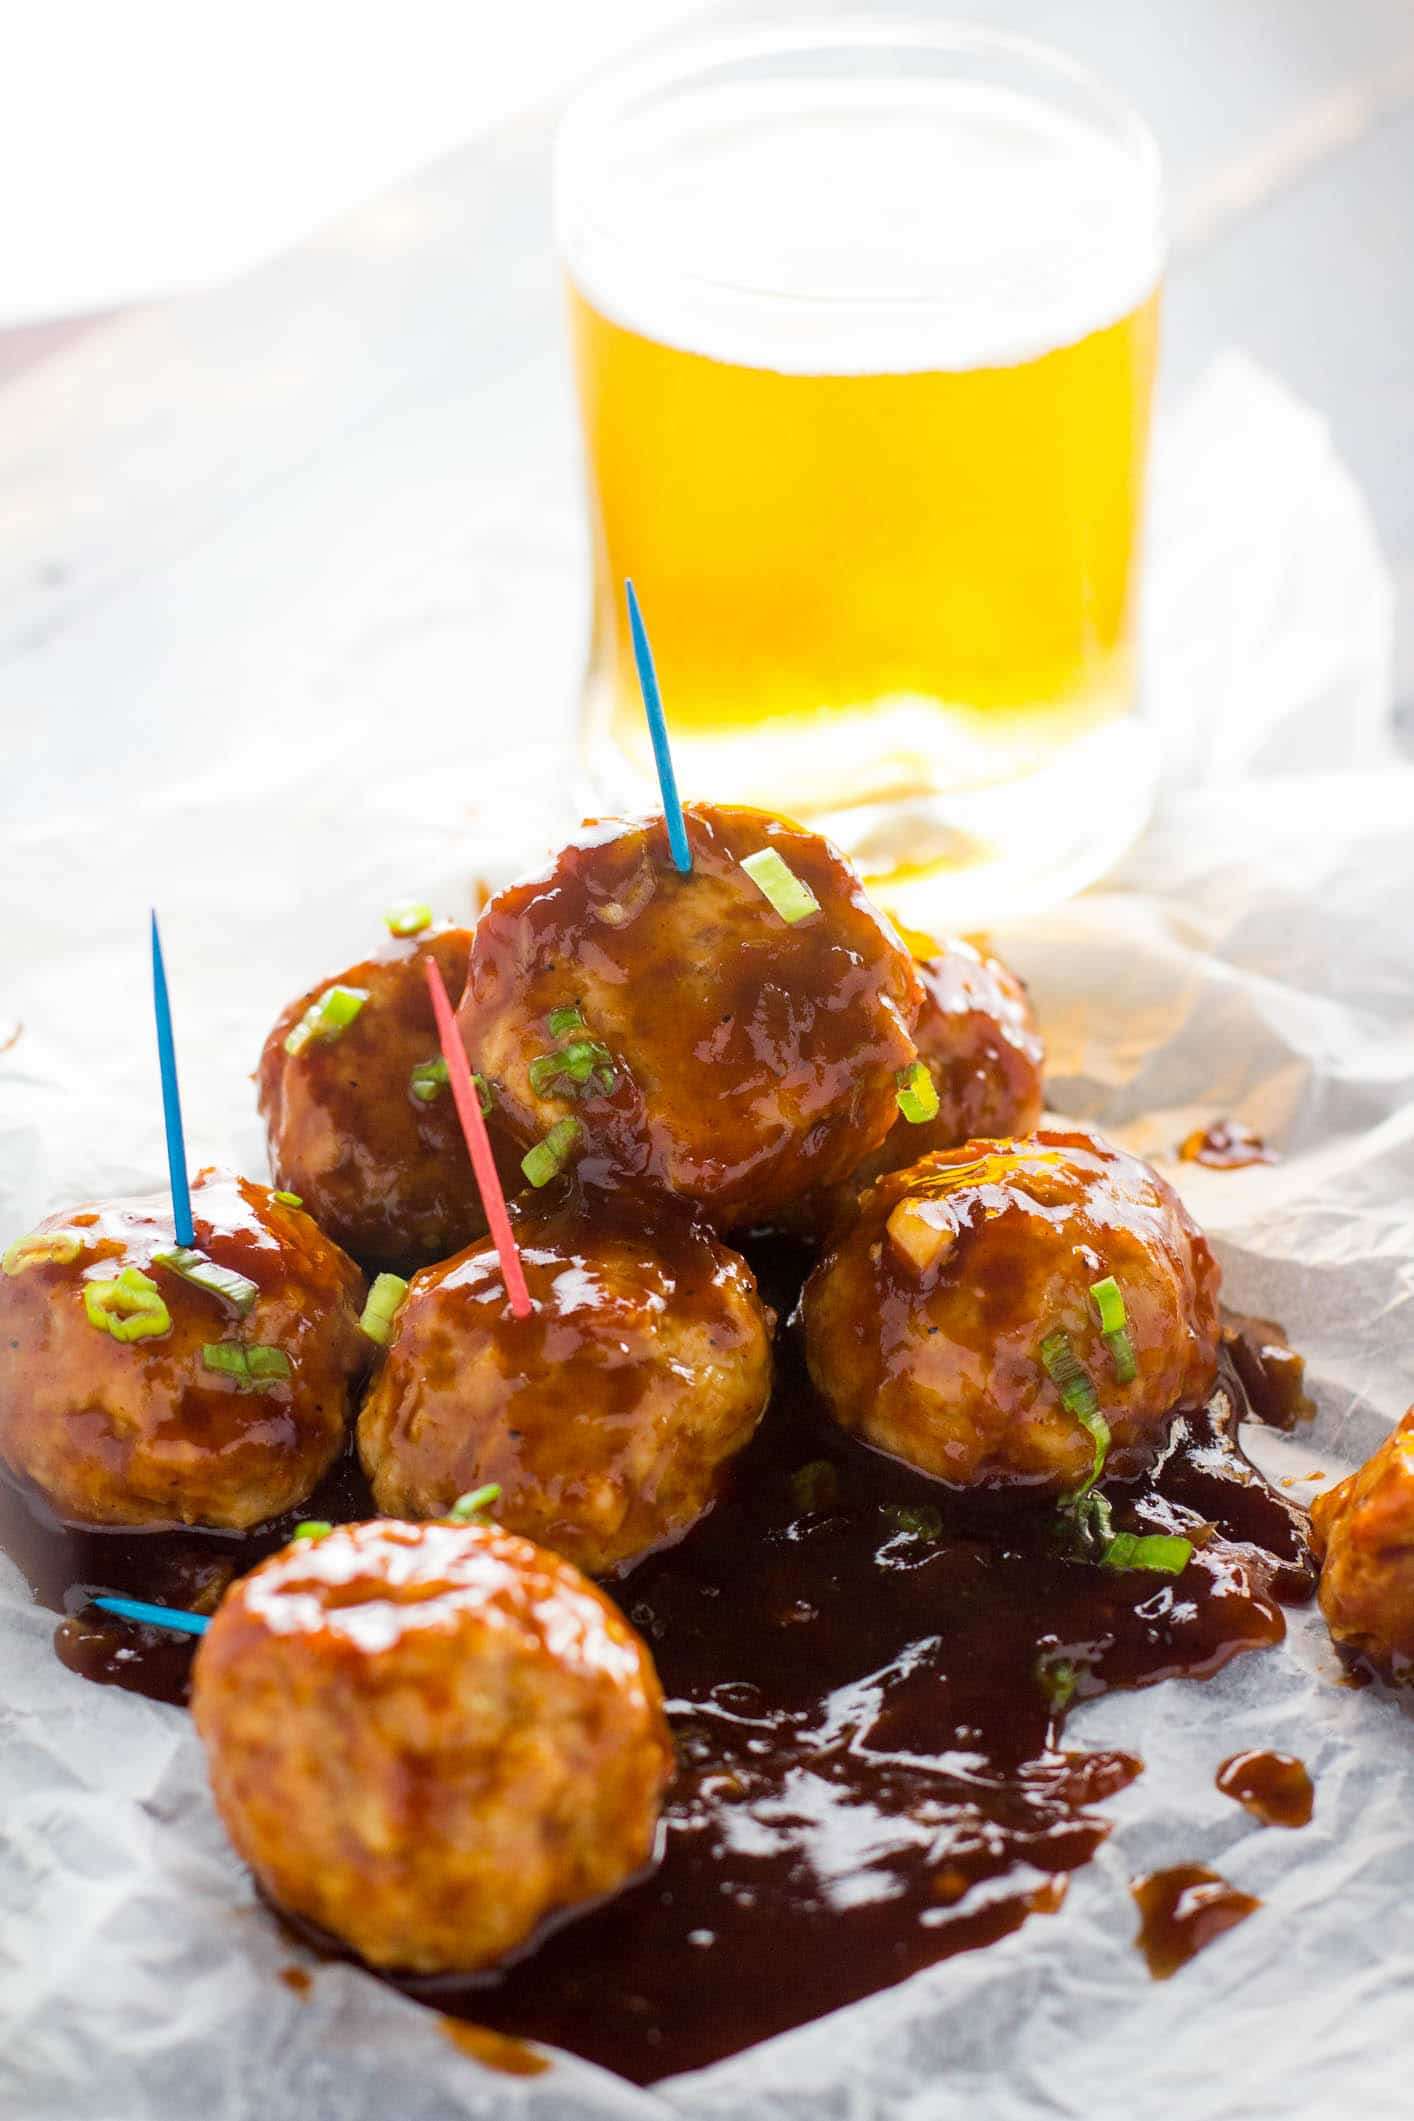 Tender and deliciously easy meatballs that come together in under 30 minutes, all dipped in a heavenly chipotle and bourbon glaze.